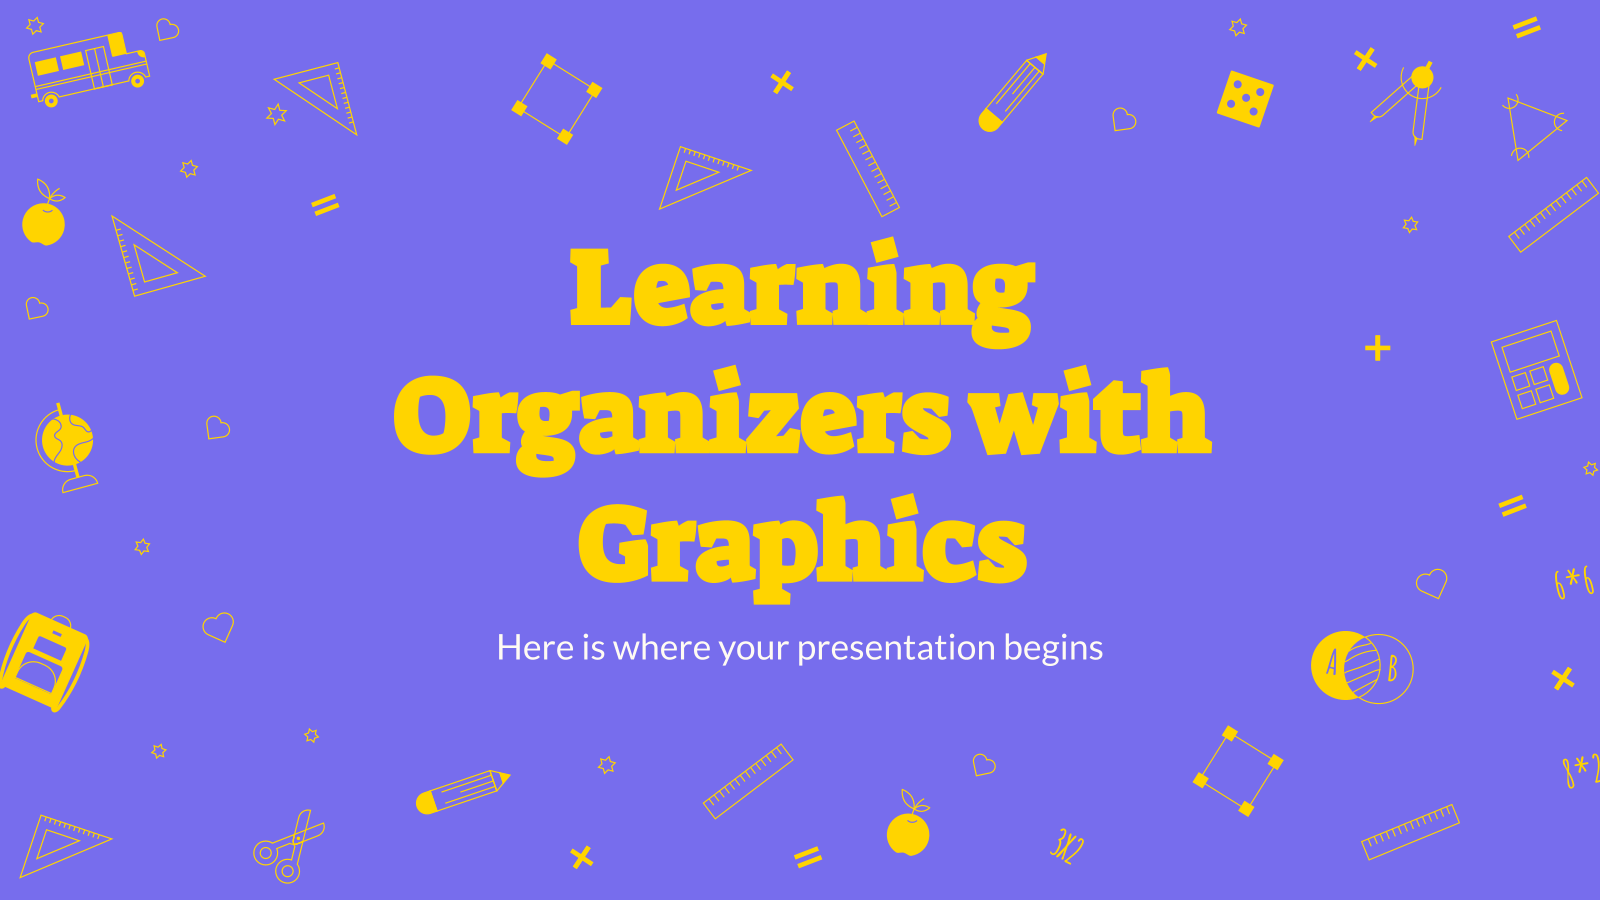 Learning Organizers with Graphics presentation template